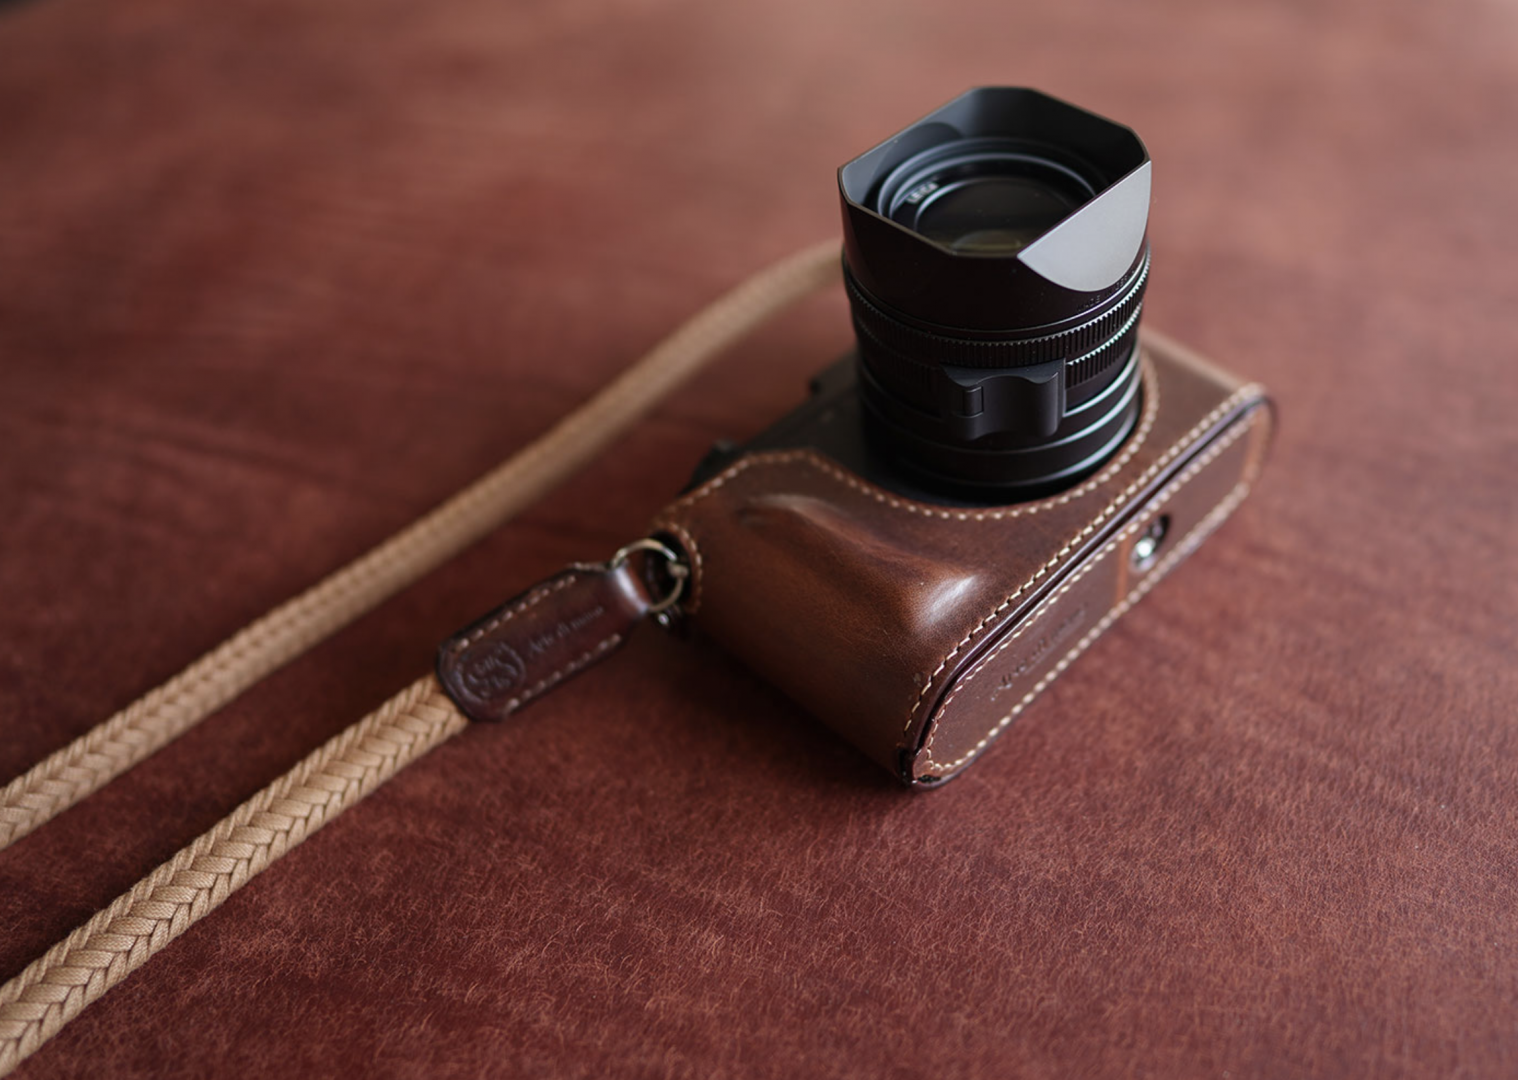 The Q2 Arte di Mano case includes a small handgrip made from layers of soft leather